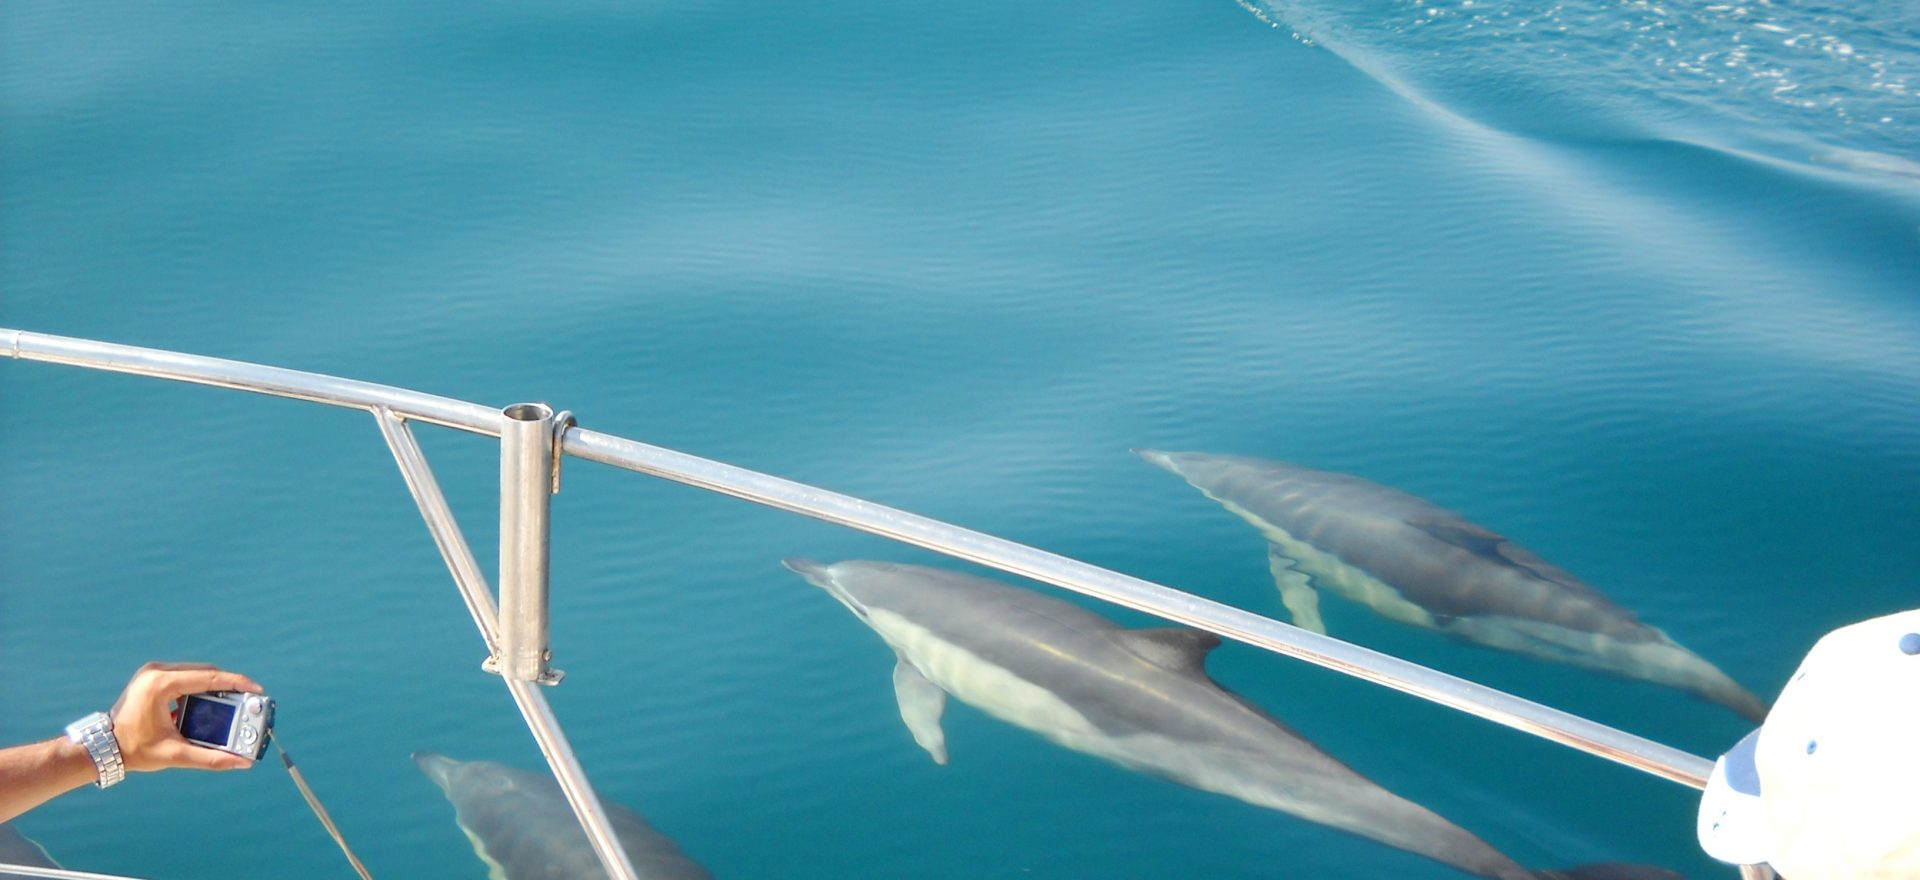 Dolphins watching vilamoura